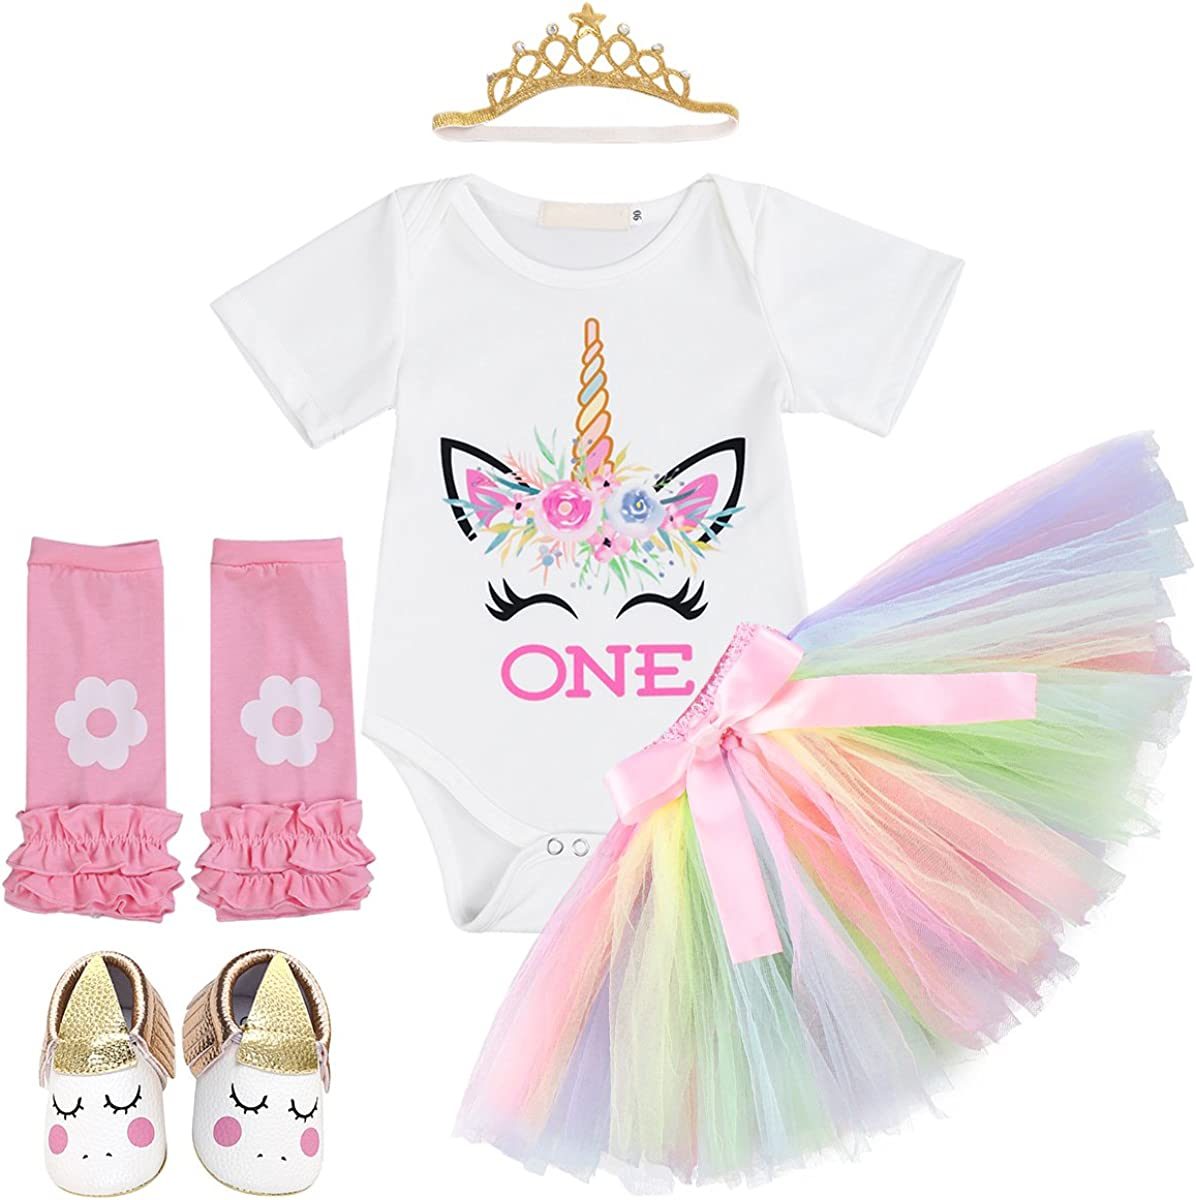 FYMNSI Unicorn Princess Baby Girls 1st Birthday Cake Smash Floral Romper Skirt with Unicorn Headband 3PCS Outfits